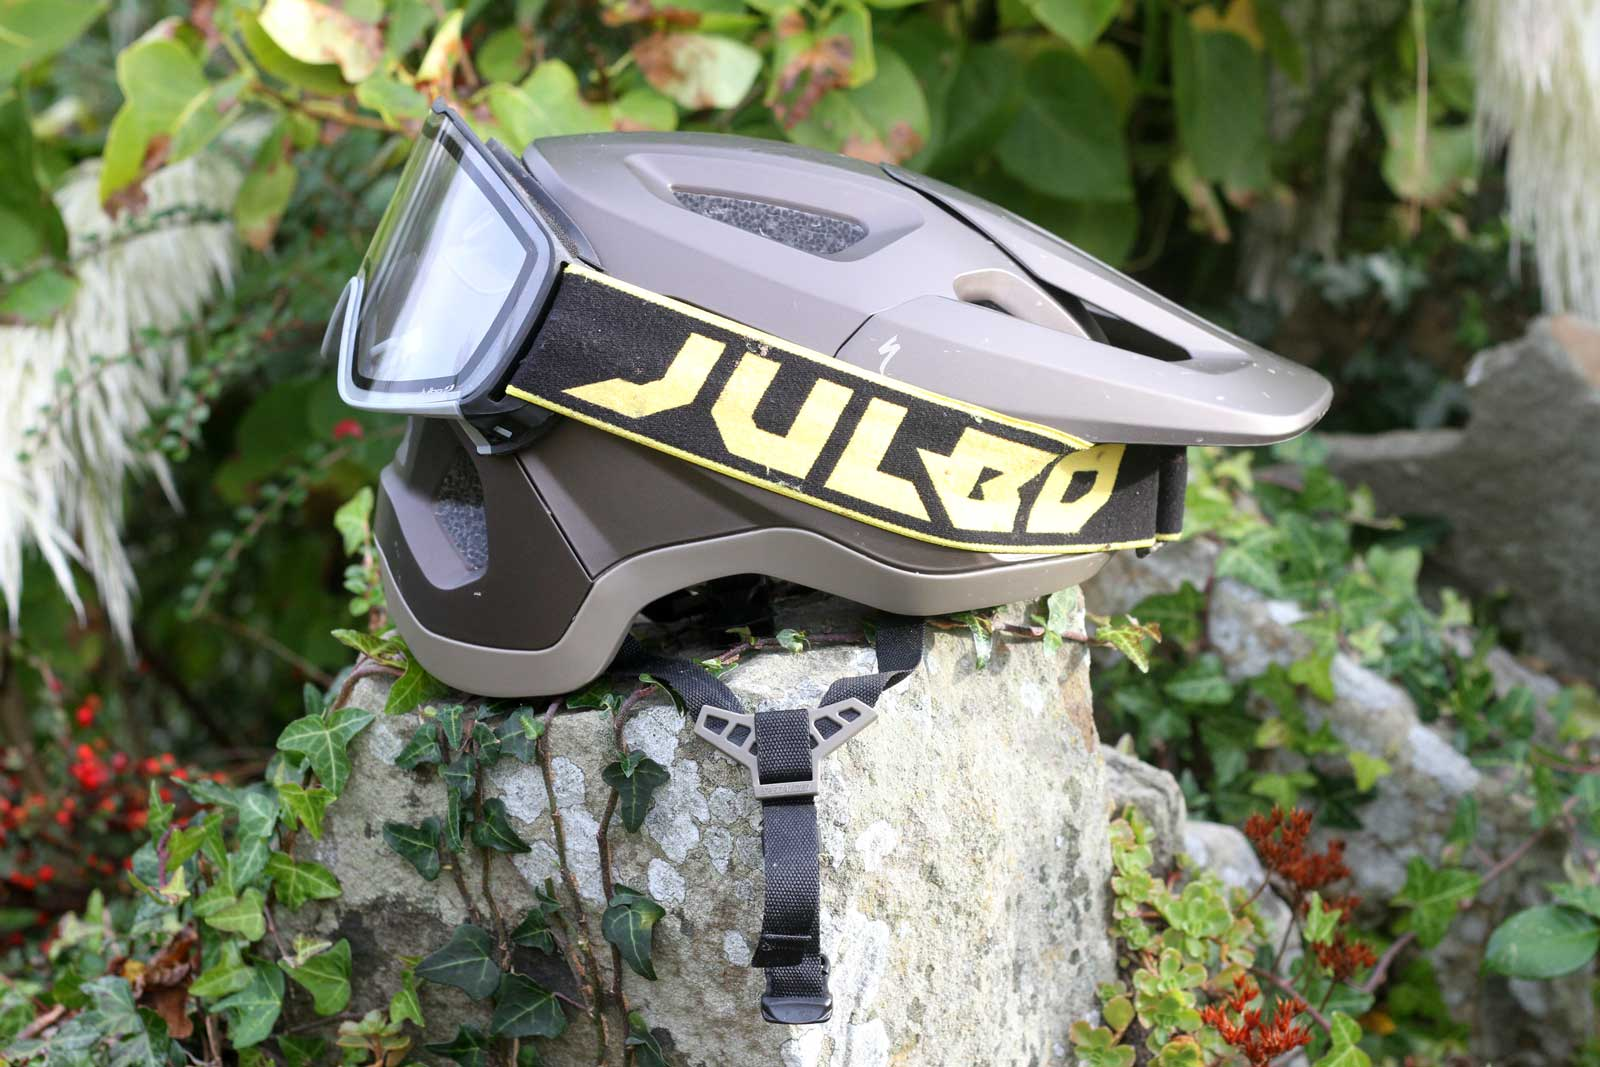 specialized tactic 4 helmet review julbo goggles stowed